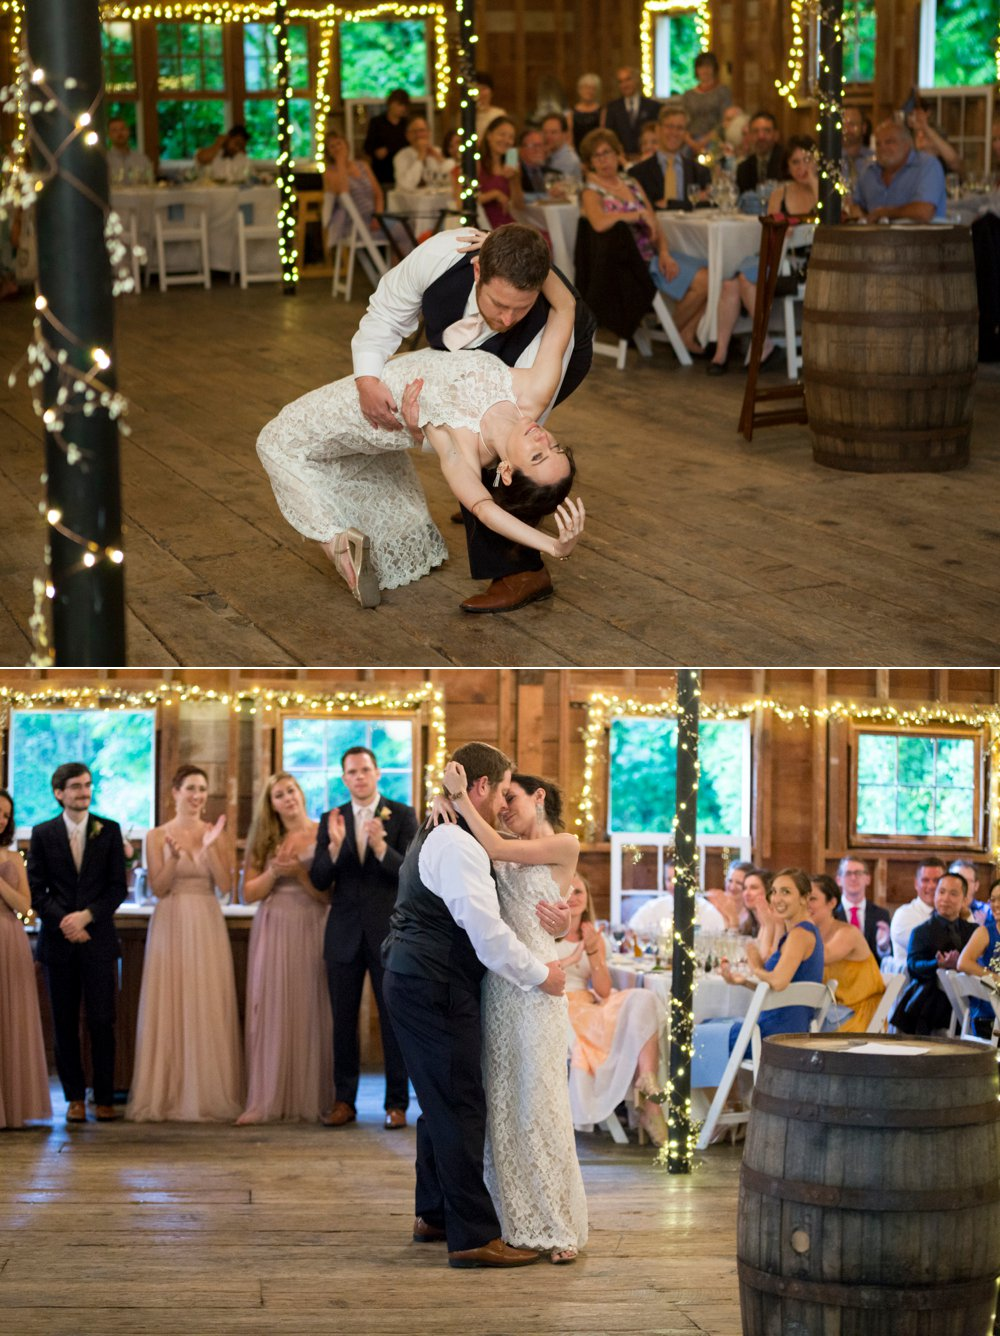 SomerbyJonesPhotography_WestMountainInnWedding_WestMountainInn_RusticVermontWedding_0048.jpg